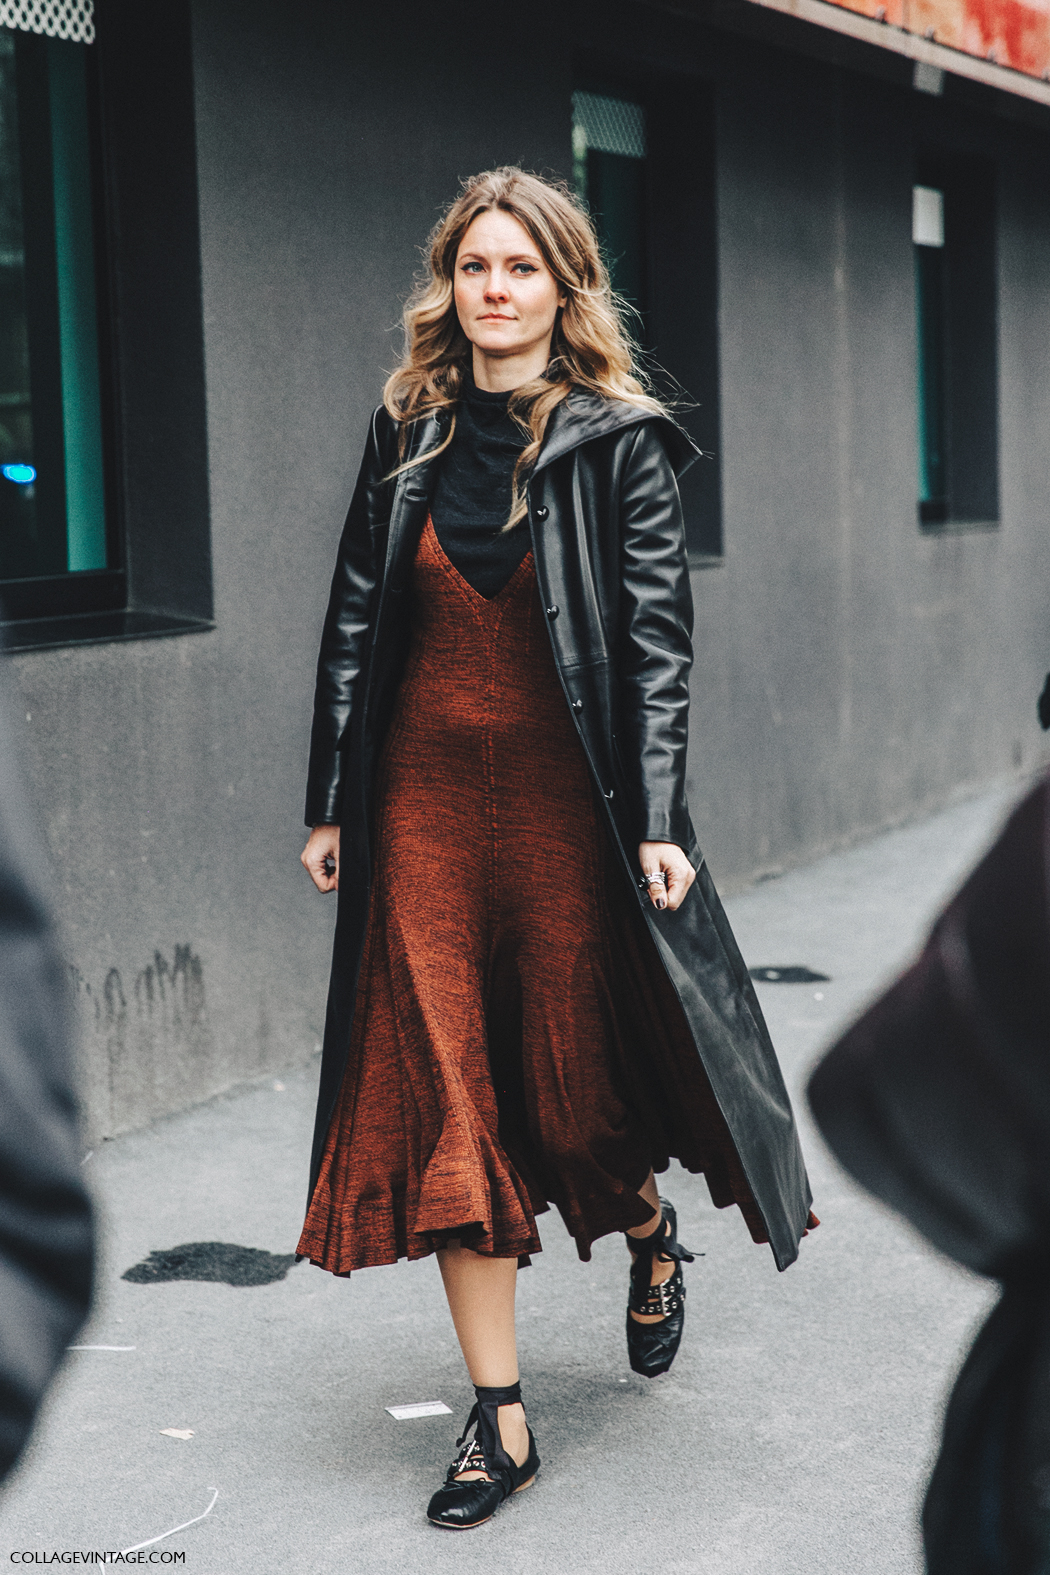 Milan_Fashion_Week_Fall_16-MFW-Street_Style-Collage_Vintage-Leather_Coat-Celine_Dress-Miu_Miu_Flats_Ballerinas-